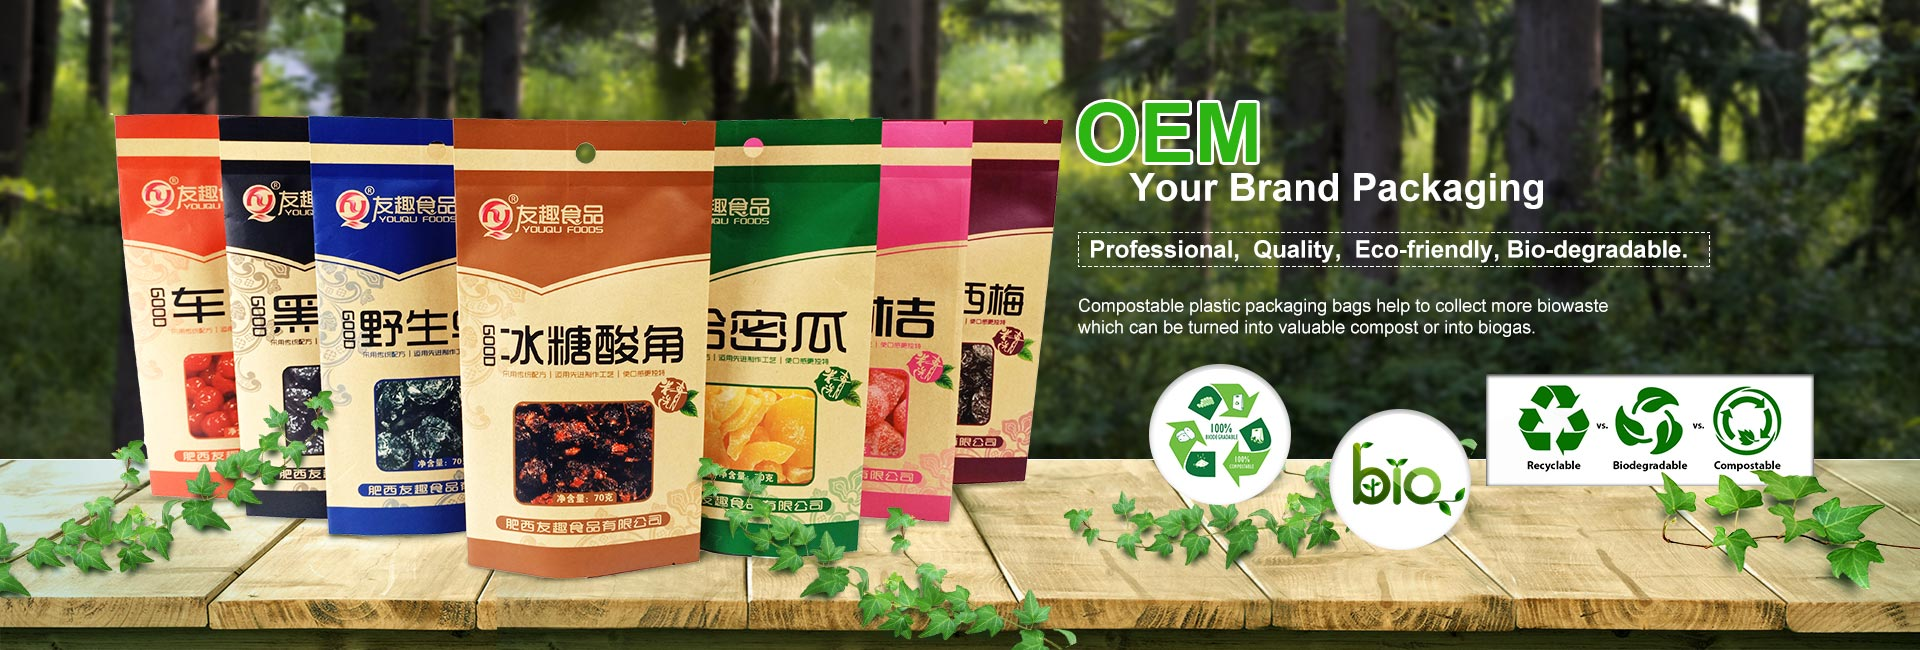 OEM Your Brand Packaging